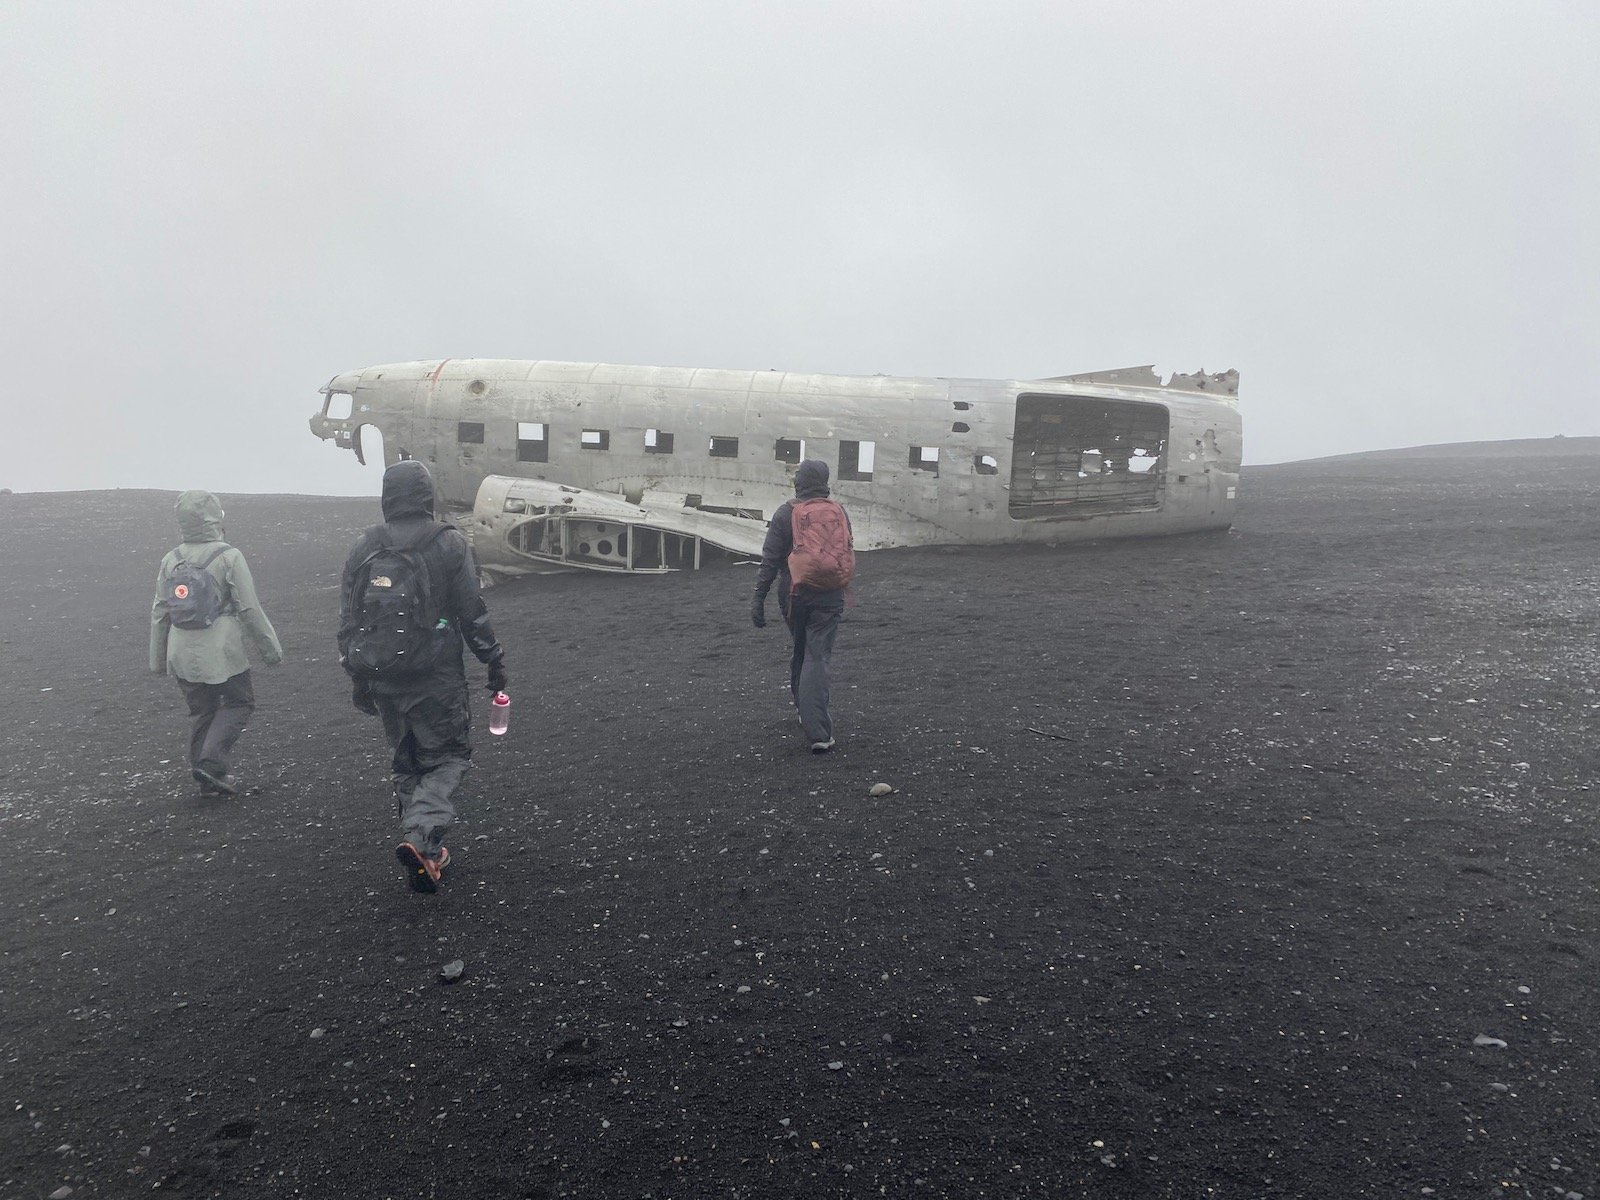 Family walking towards the famed 1973 plane wreck in Iceland.